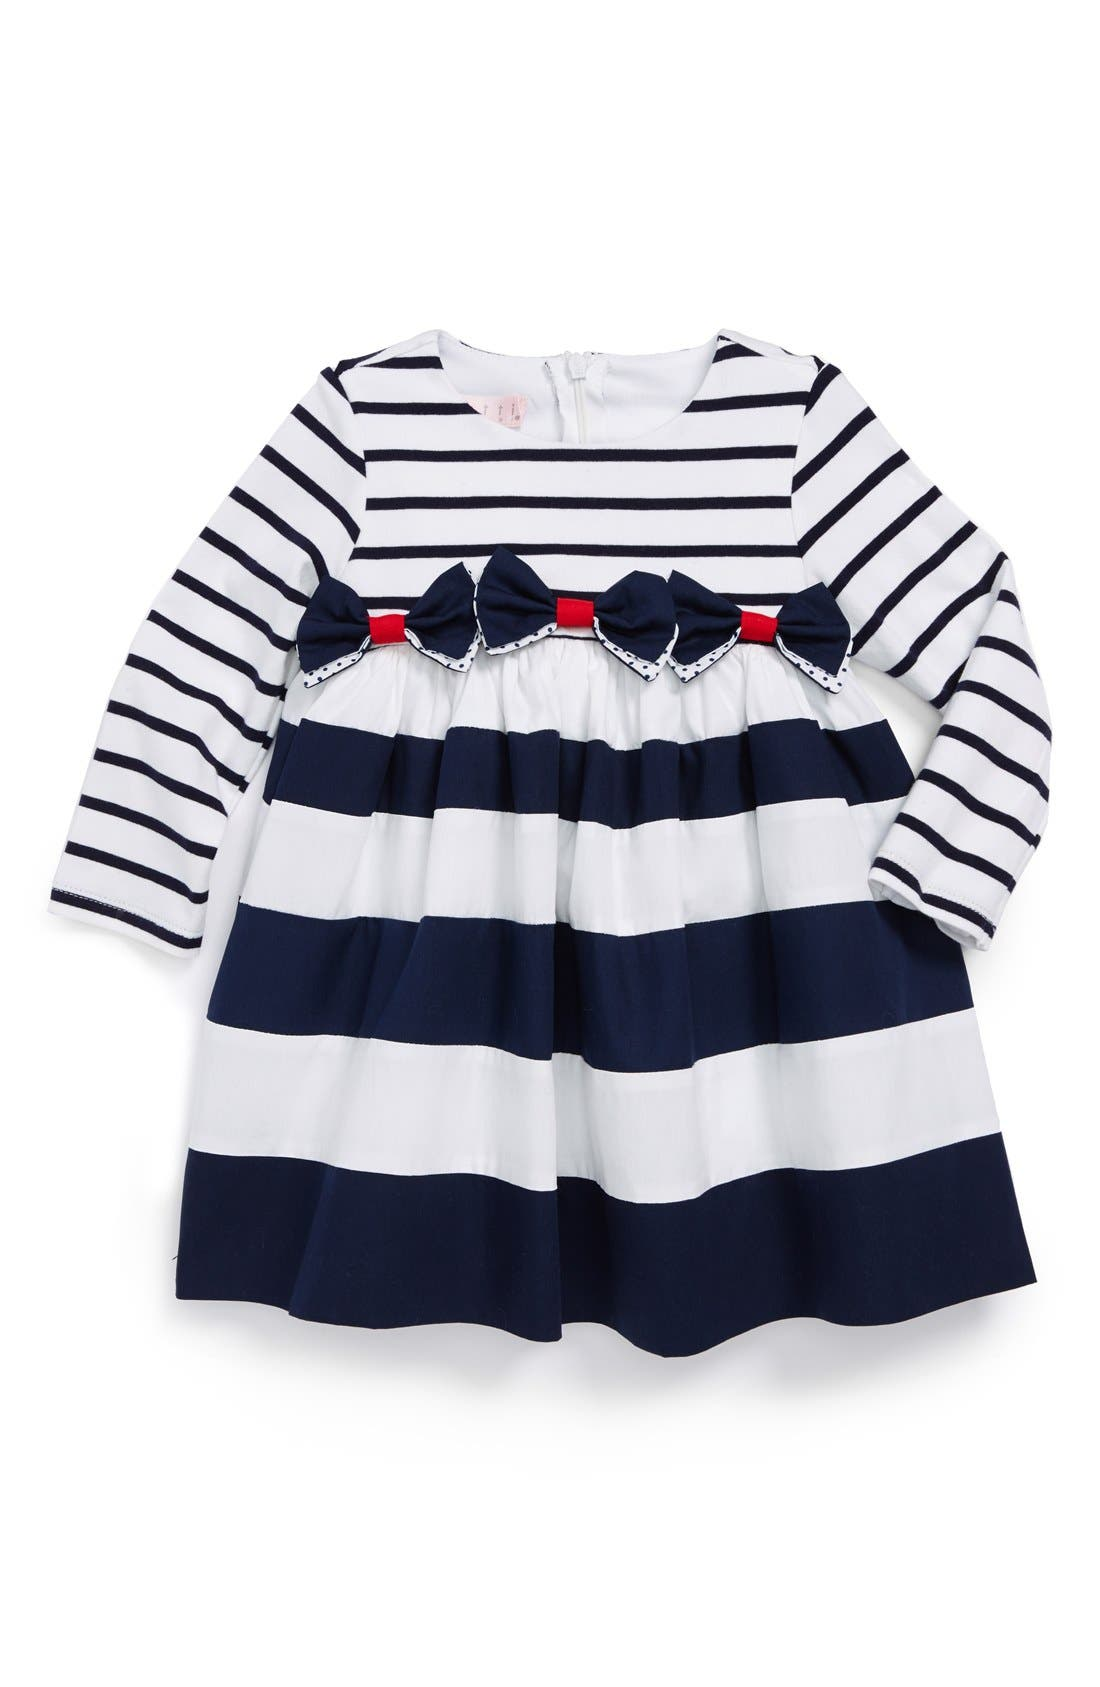 Main Image - Biscotti Stripe Dress (Baby Girls)